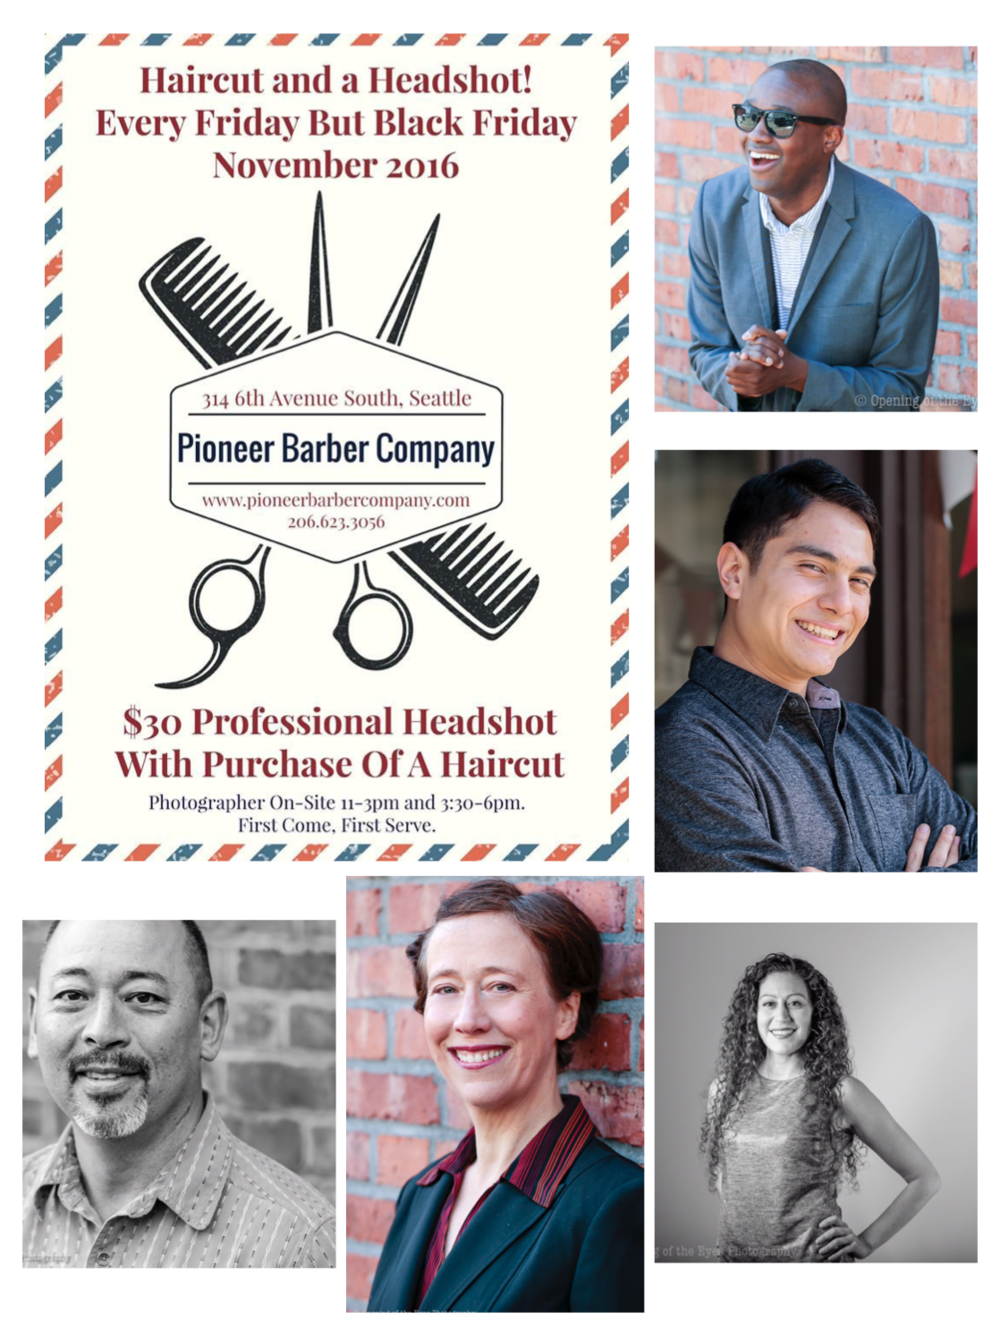 Pay $50 ($150 reg. price) without a haircut, or $30 with one! Get hair cut, styled then fantastic photos just come easy! Call or email me: steph@openingoftheeyes.com to setup an appointment!!